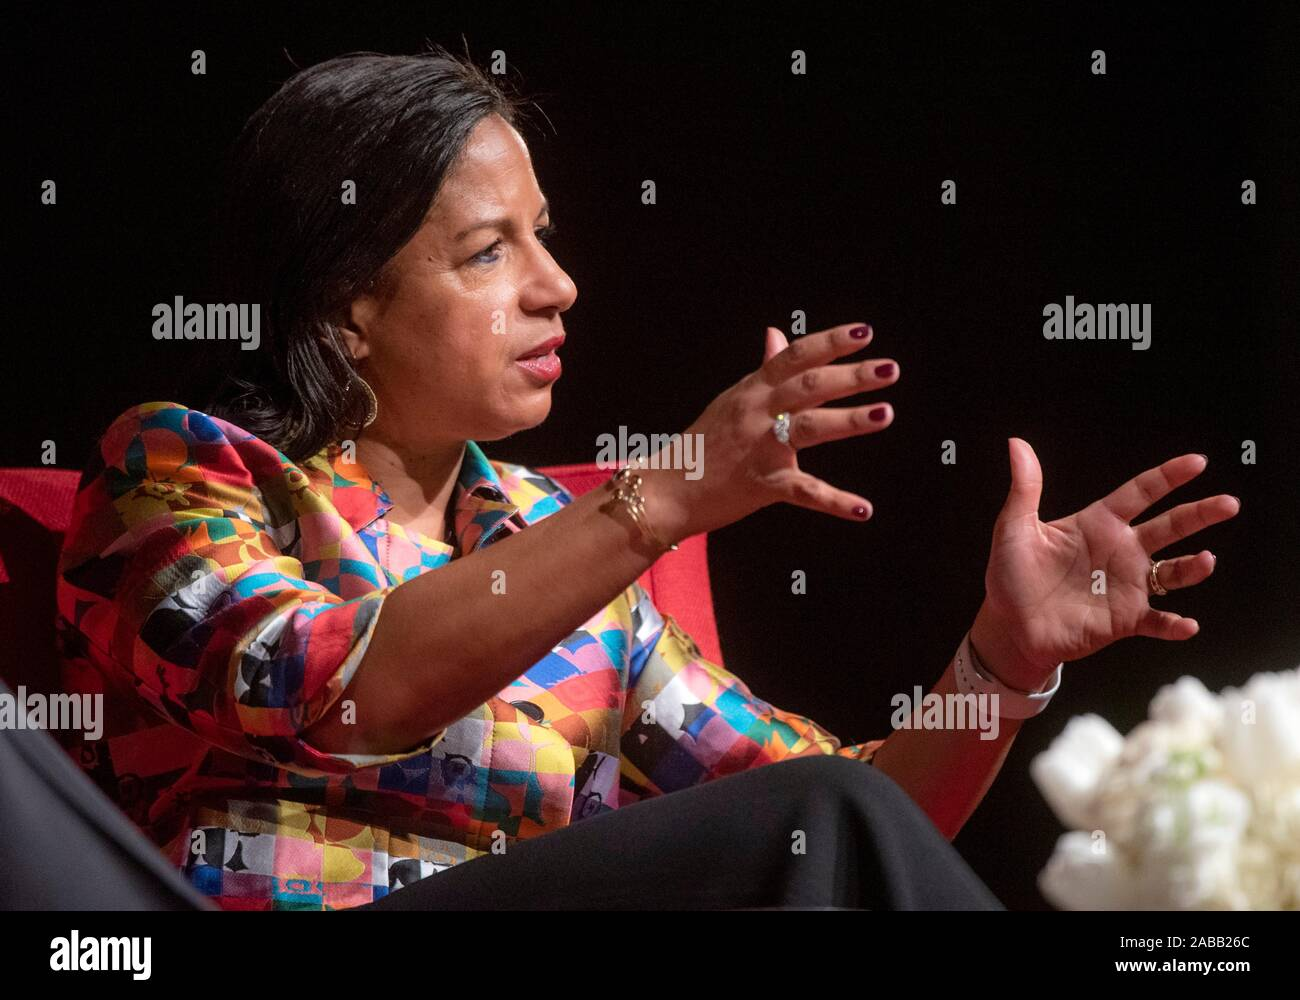 Susan E. Rice, former National Security Advisor to President Barack Obama and U.S. Ambassador to the United Nations during a discussion with Foundation Director Mark Lawrence, left, at the LBJ Presidential Library November 20, 2019 in Austin, Texas. Ambassador Rice is currently Distinguished Visiting Research Fellow at the School of International Service at American University Stock Photo